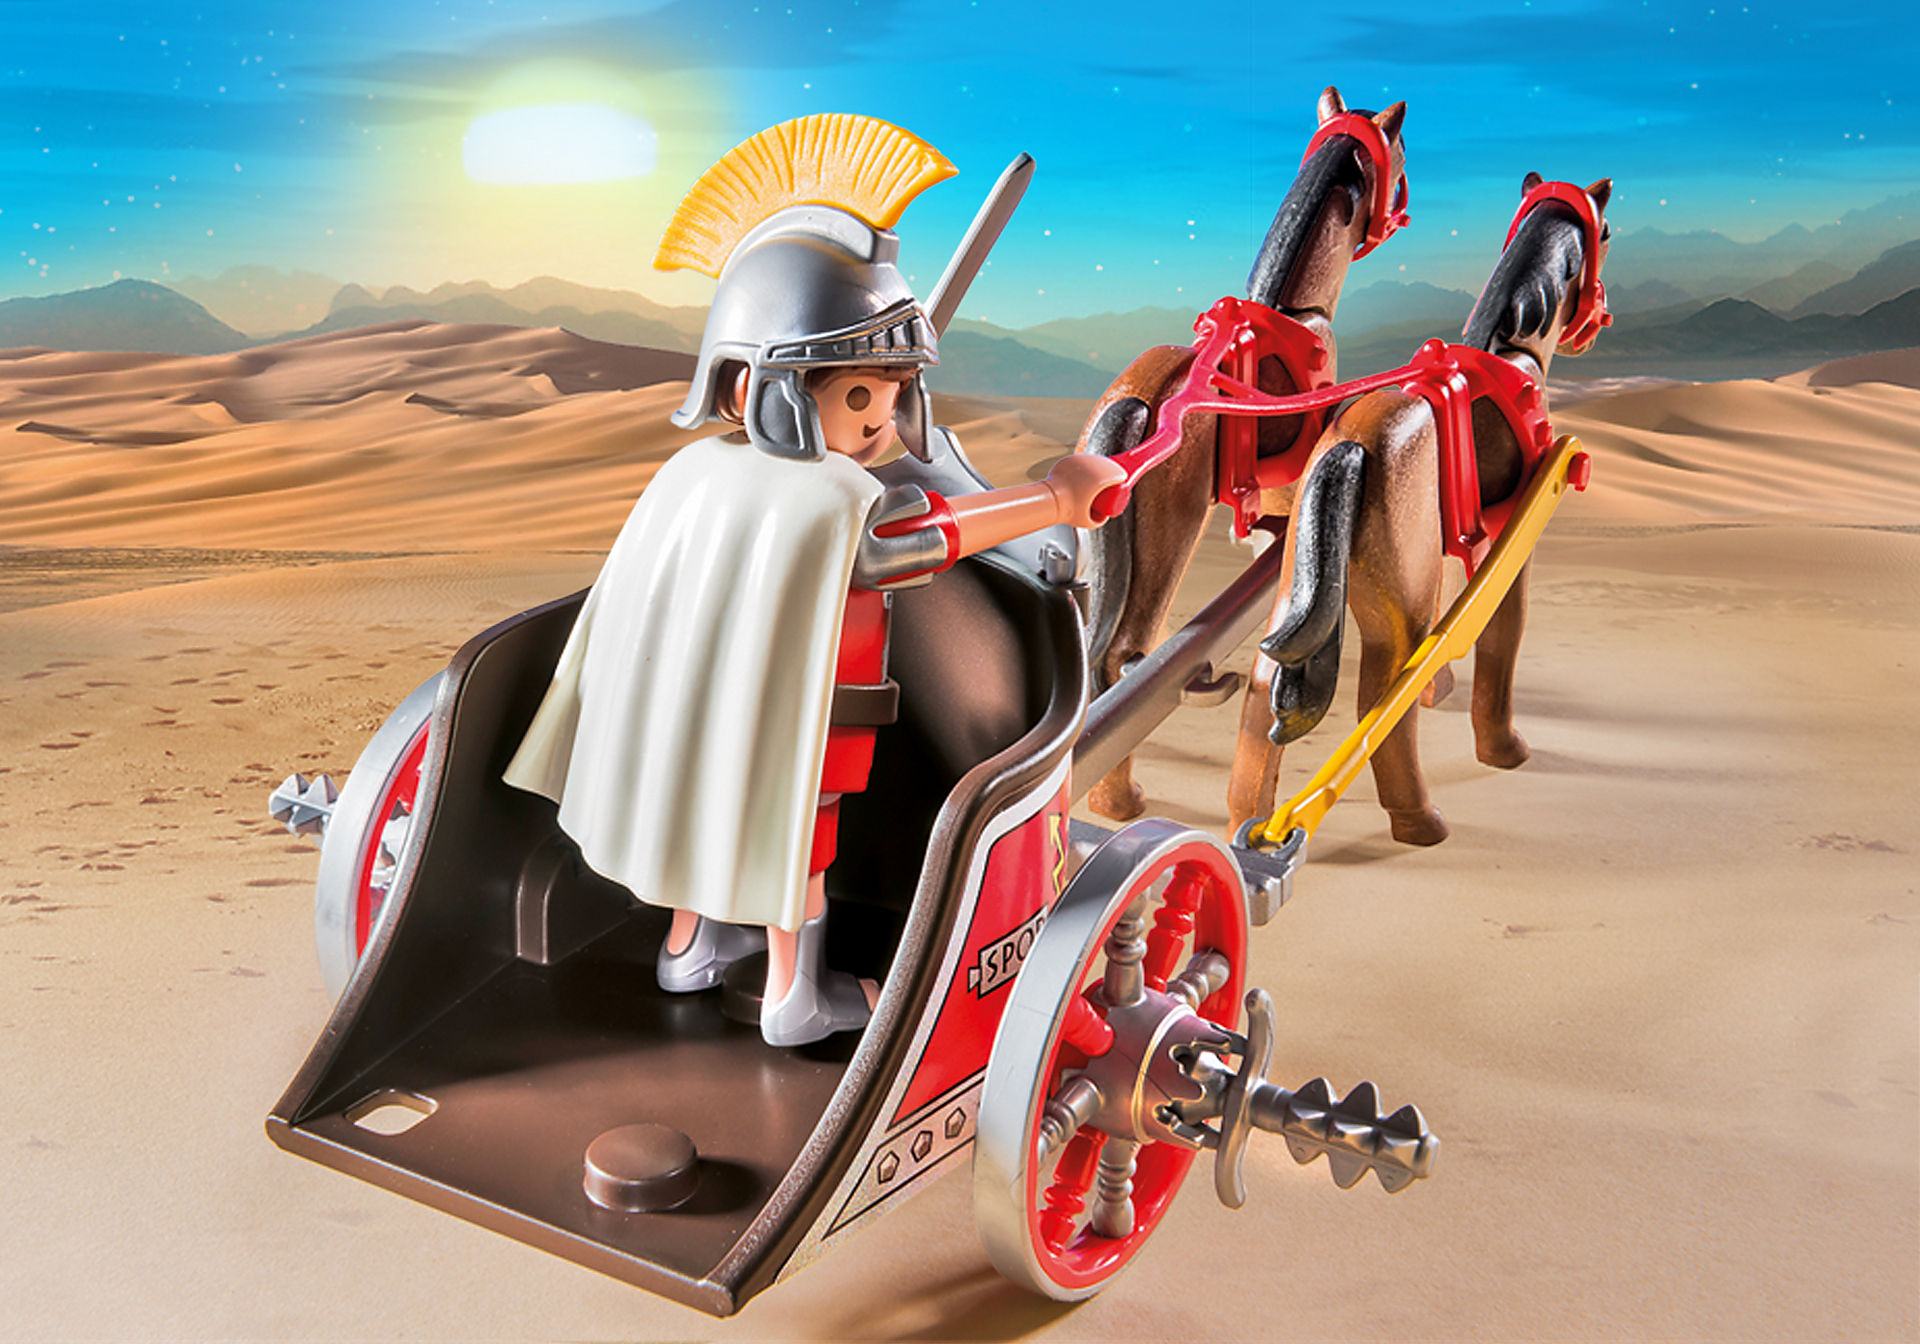 http://media.playmobil.com/i/playmobil/5391_product_extra1/Римляне и Египтяне: Римская Колесница